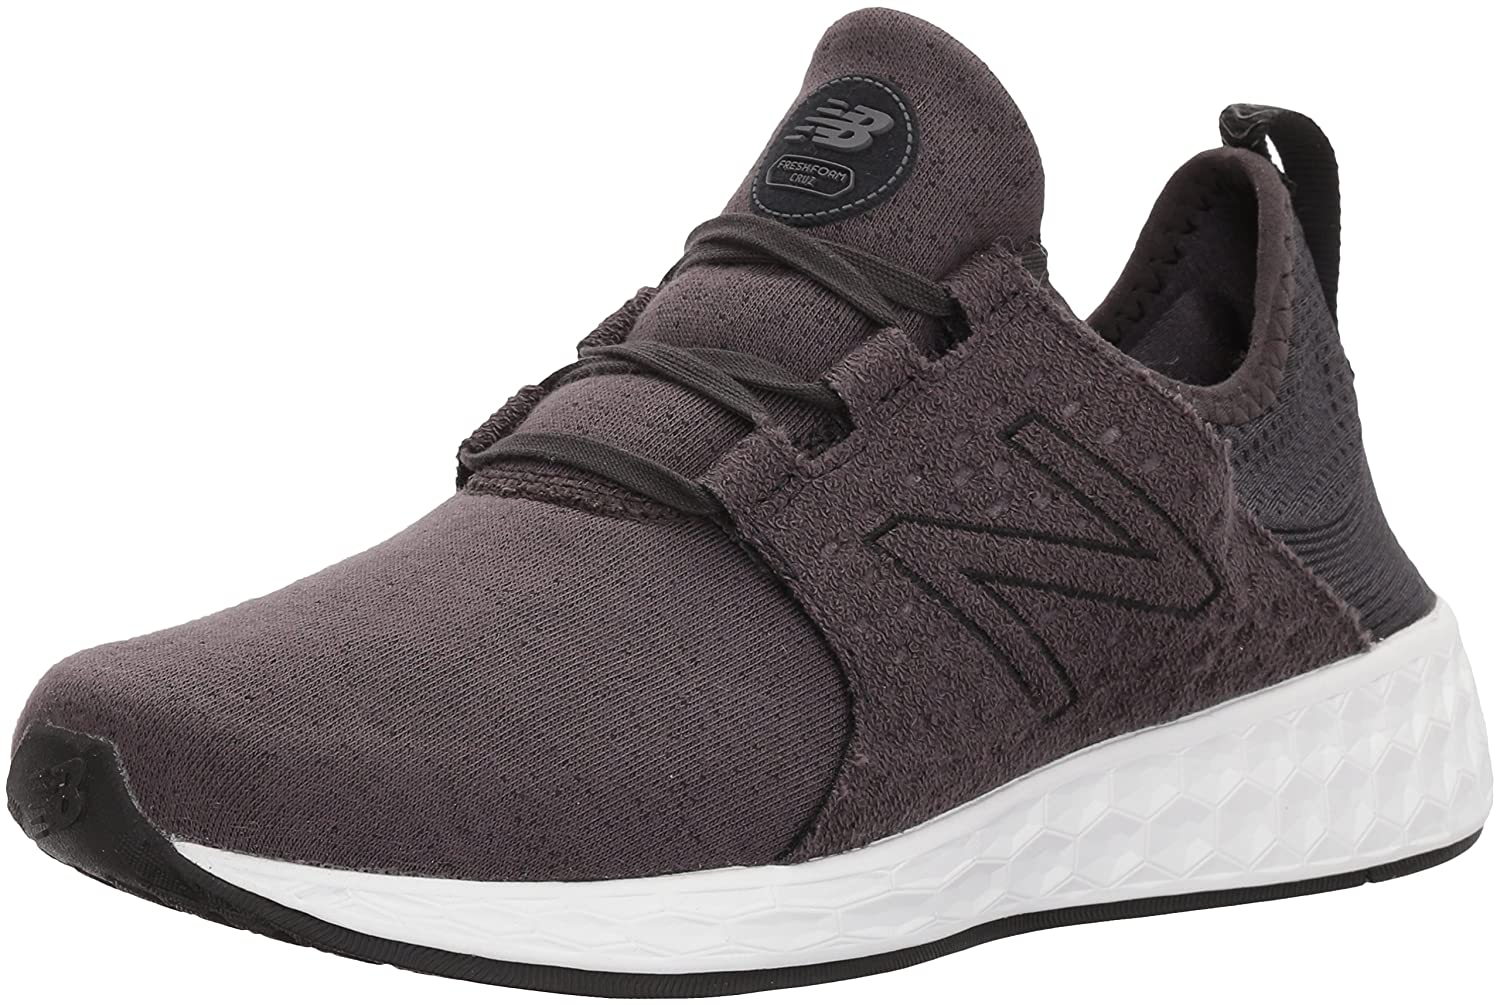 New Balance Women's Fresh Foam Cruz V1 Retro Hoodie Running Shoe B06XRSZY9G 7.5 D US|Black/Phantom